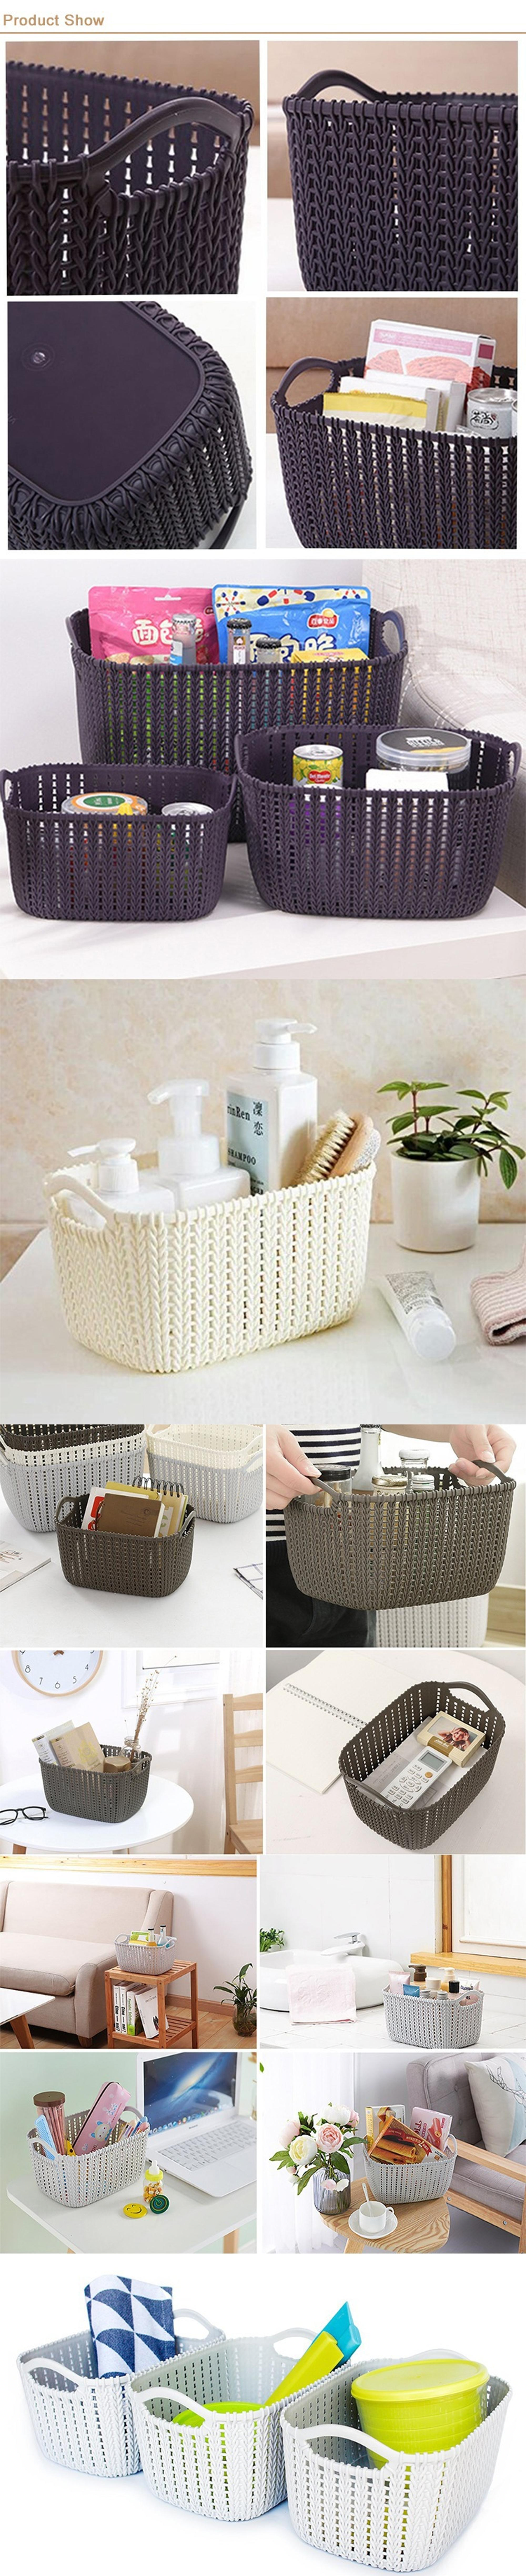 Small White Color Rectangle Picnic Moses Baby Bassinet Laundry Hamper Wicker Basket